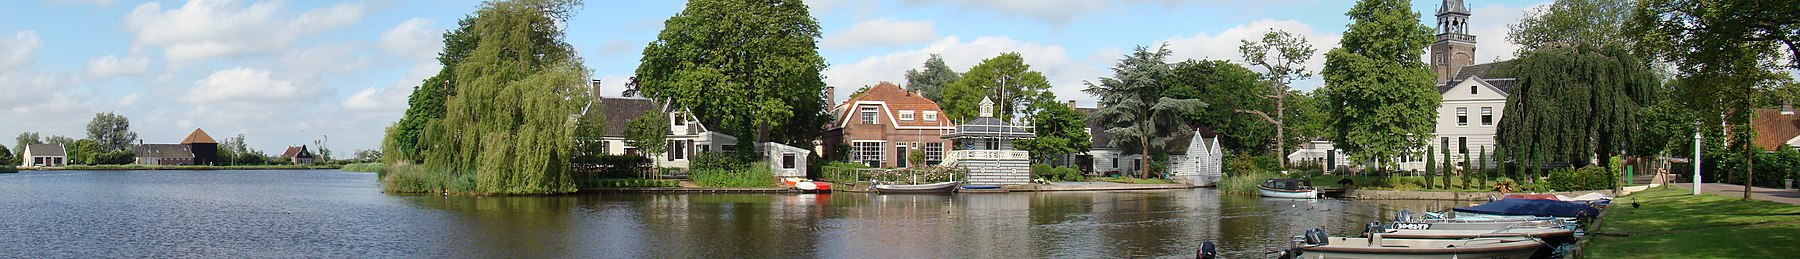 Broek in Waterland Wikivoyage Banner.JPG